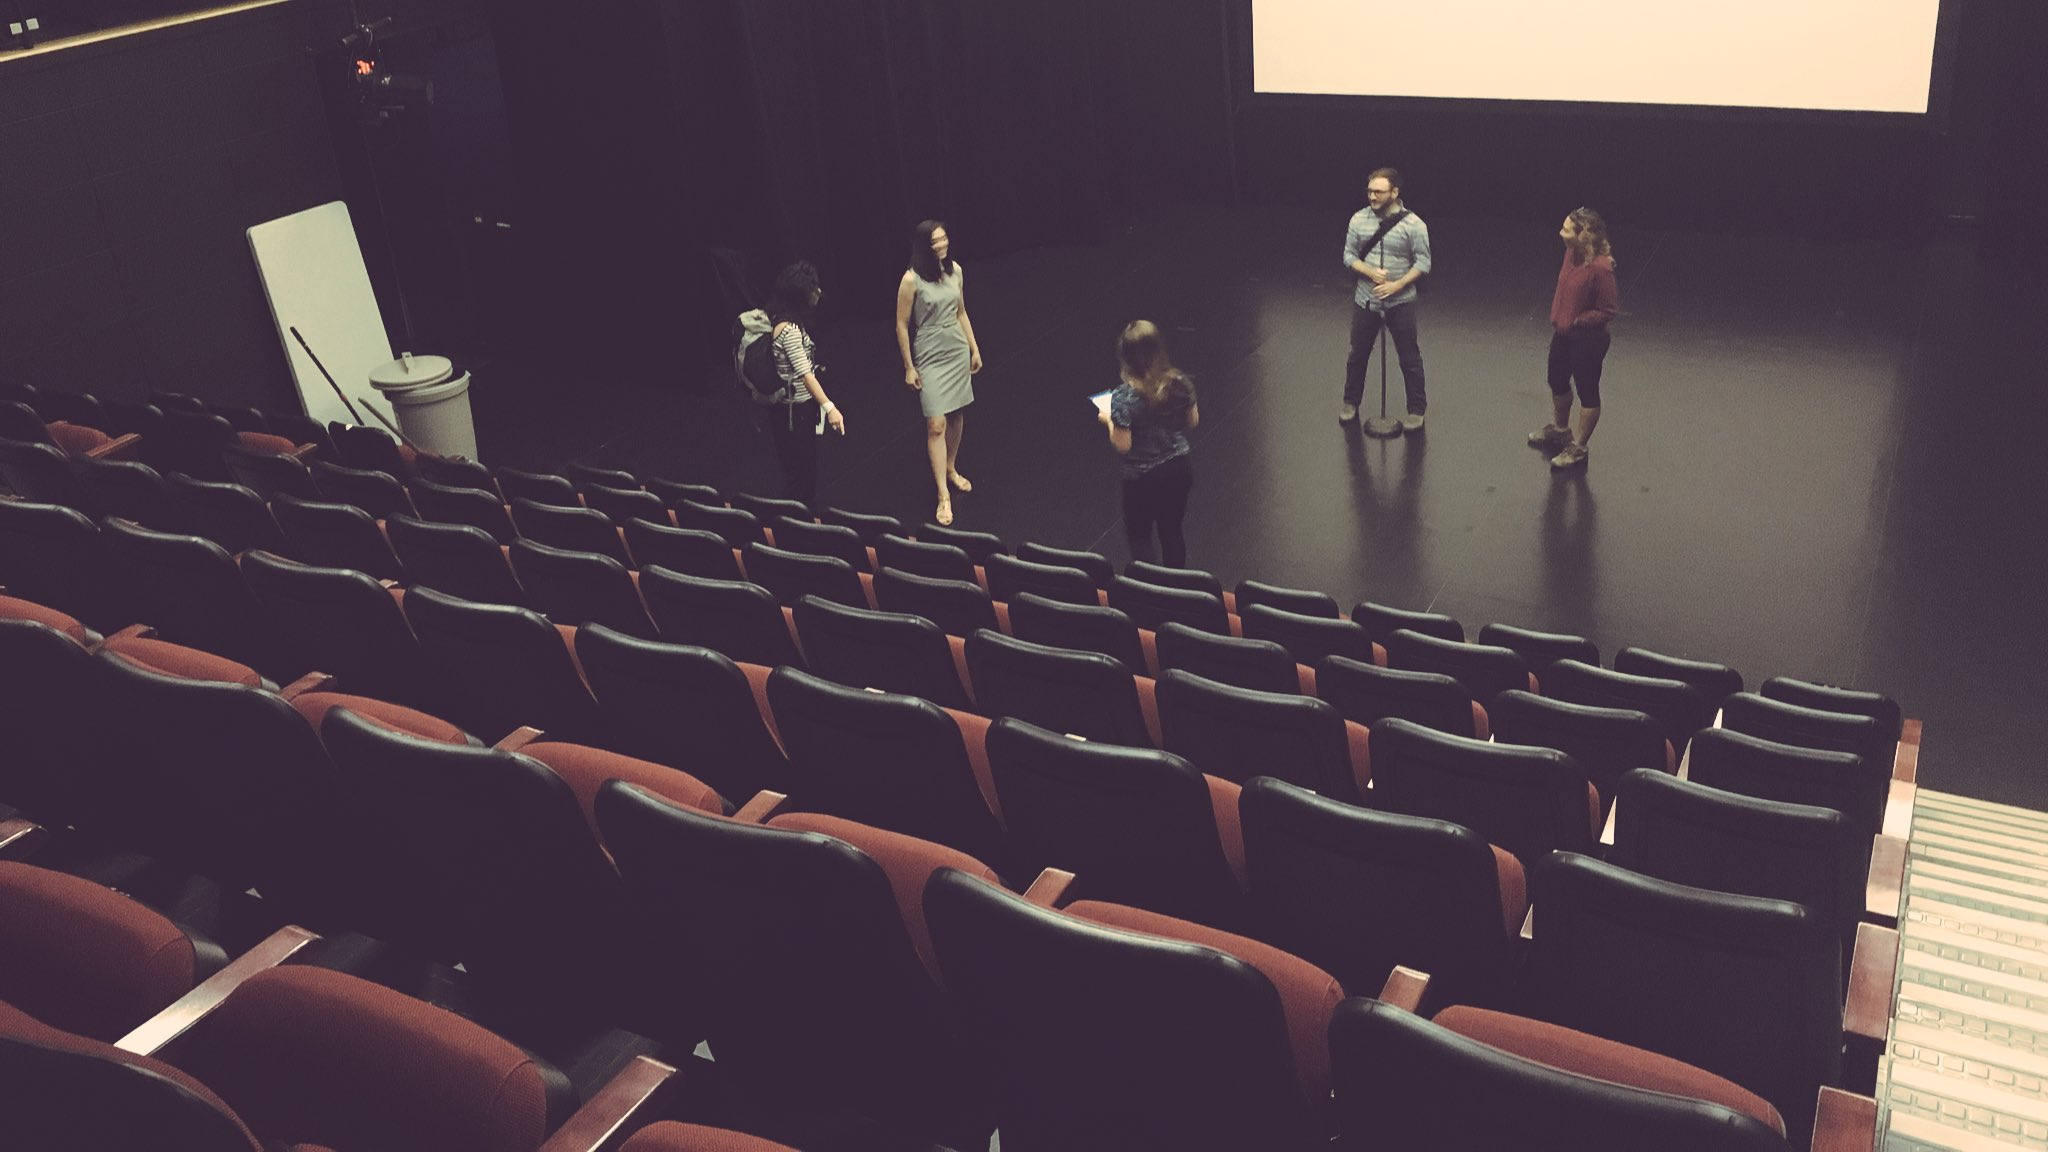 Getting a feel for LPSU Hall before today's #IMCCstories. (Thanks @steph_j_green for bringing Timmy's!) #IMCC4 https://t.co/ES087s9EIP